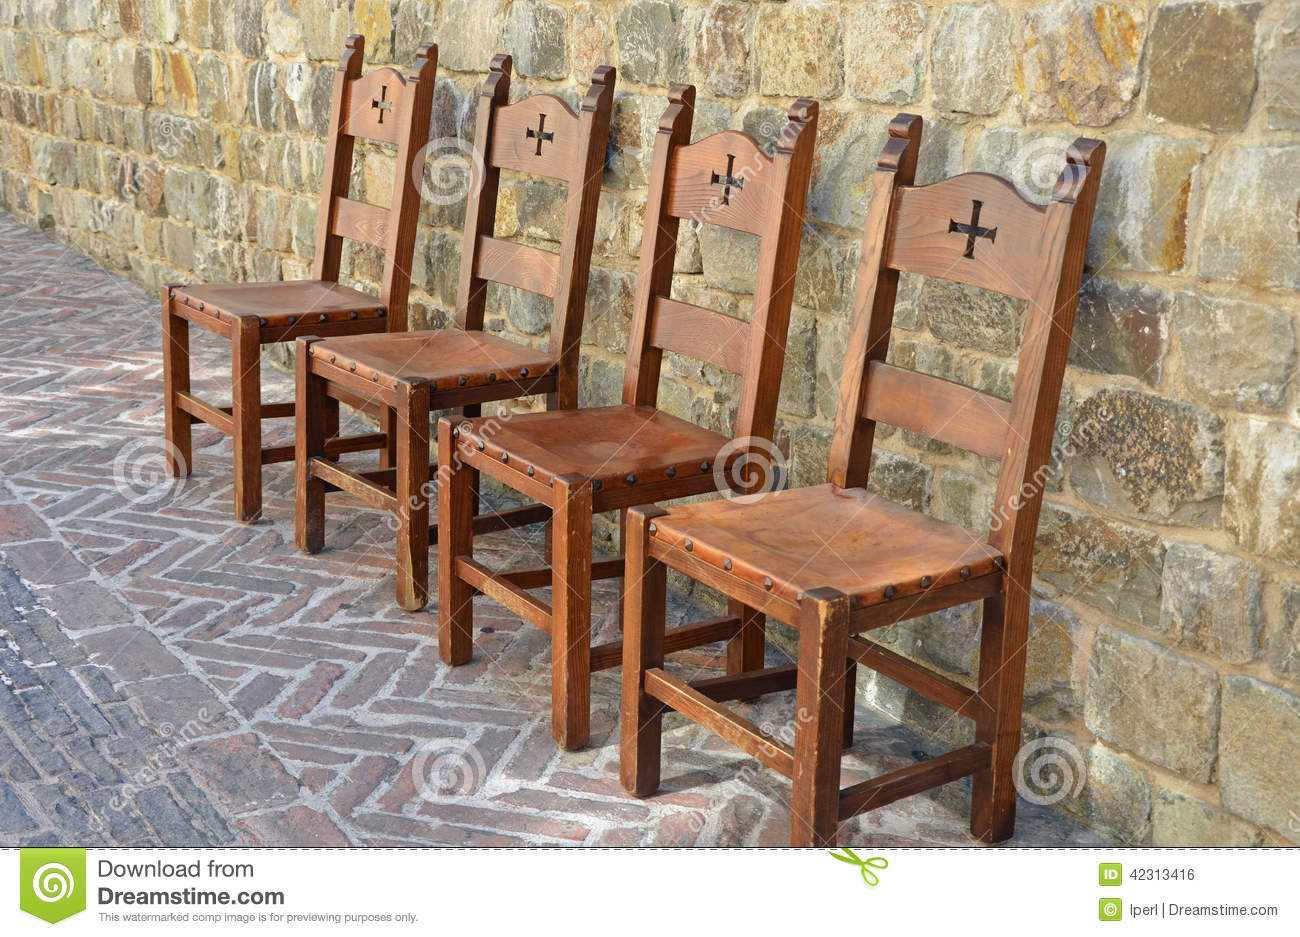 Medieval Chairs On Brick Patio Stock Photo Image 42313416 : medieval chairs brick patio style 42313416 from www.dreamstime.com size 1300 x 937 jpeg 232kB